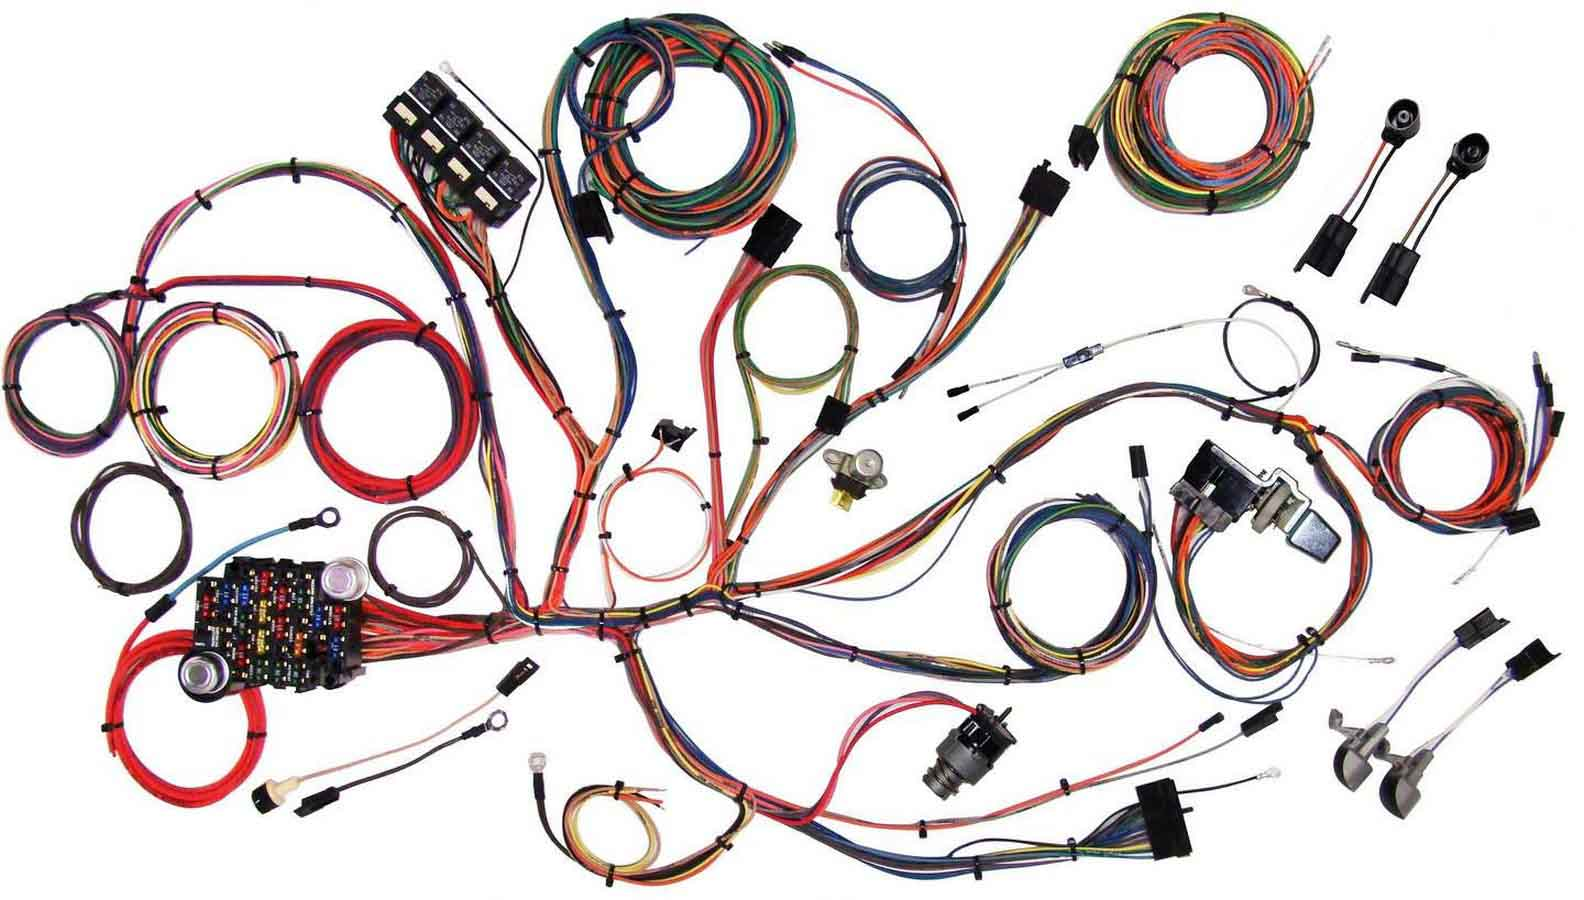 1966 chevelle wiring harness wiring diagram and hernes 1964 67 chevelle wiring kit clic update by american autowire 1966 chevrolet chevelle